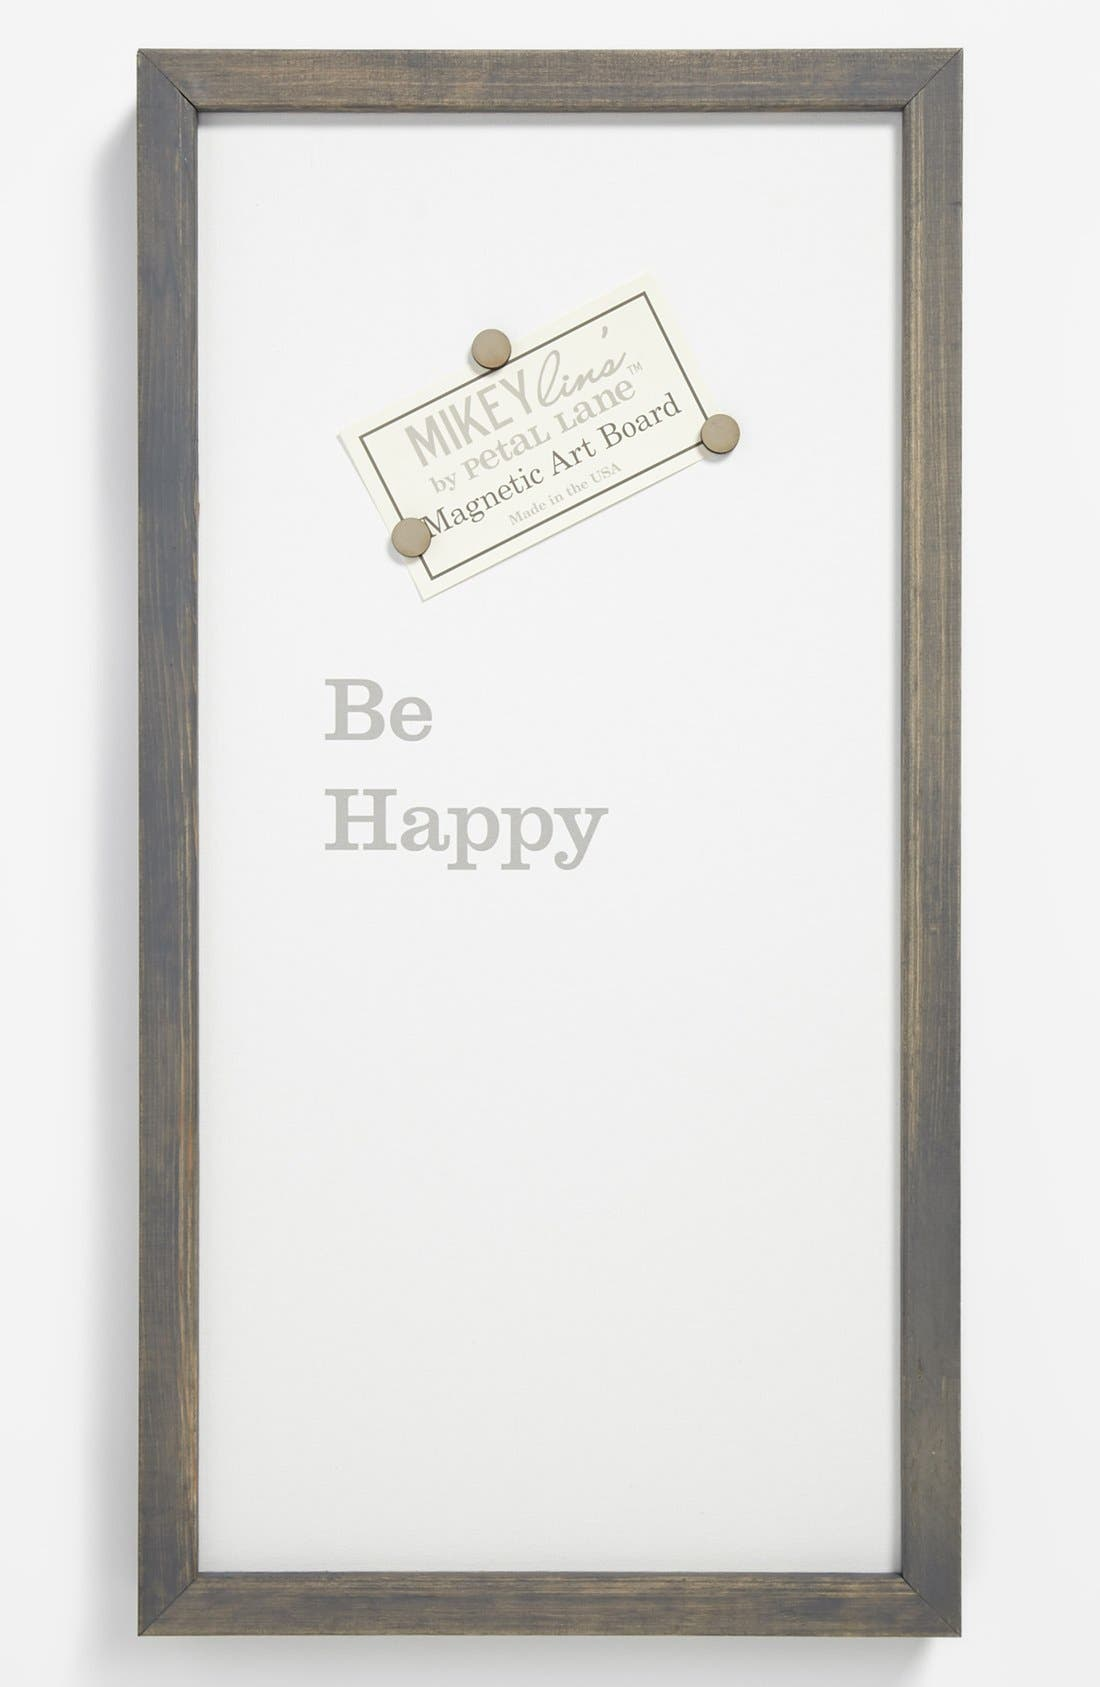 Alternate Image 1 Selected - 'Be Happy' Framed Magnet Art Board